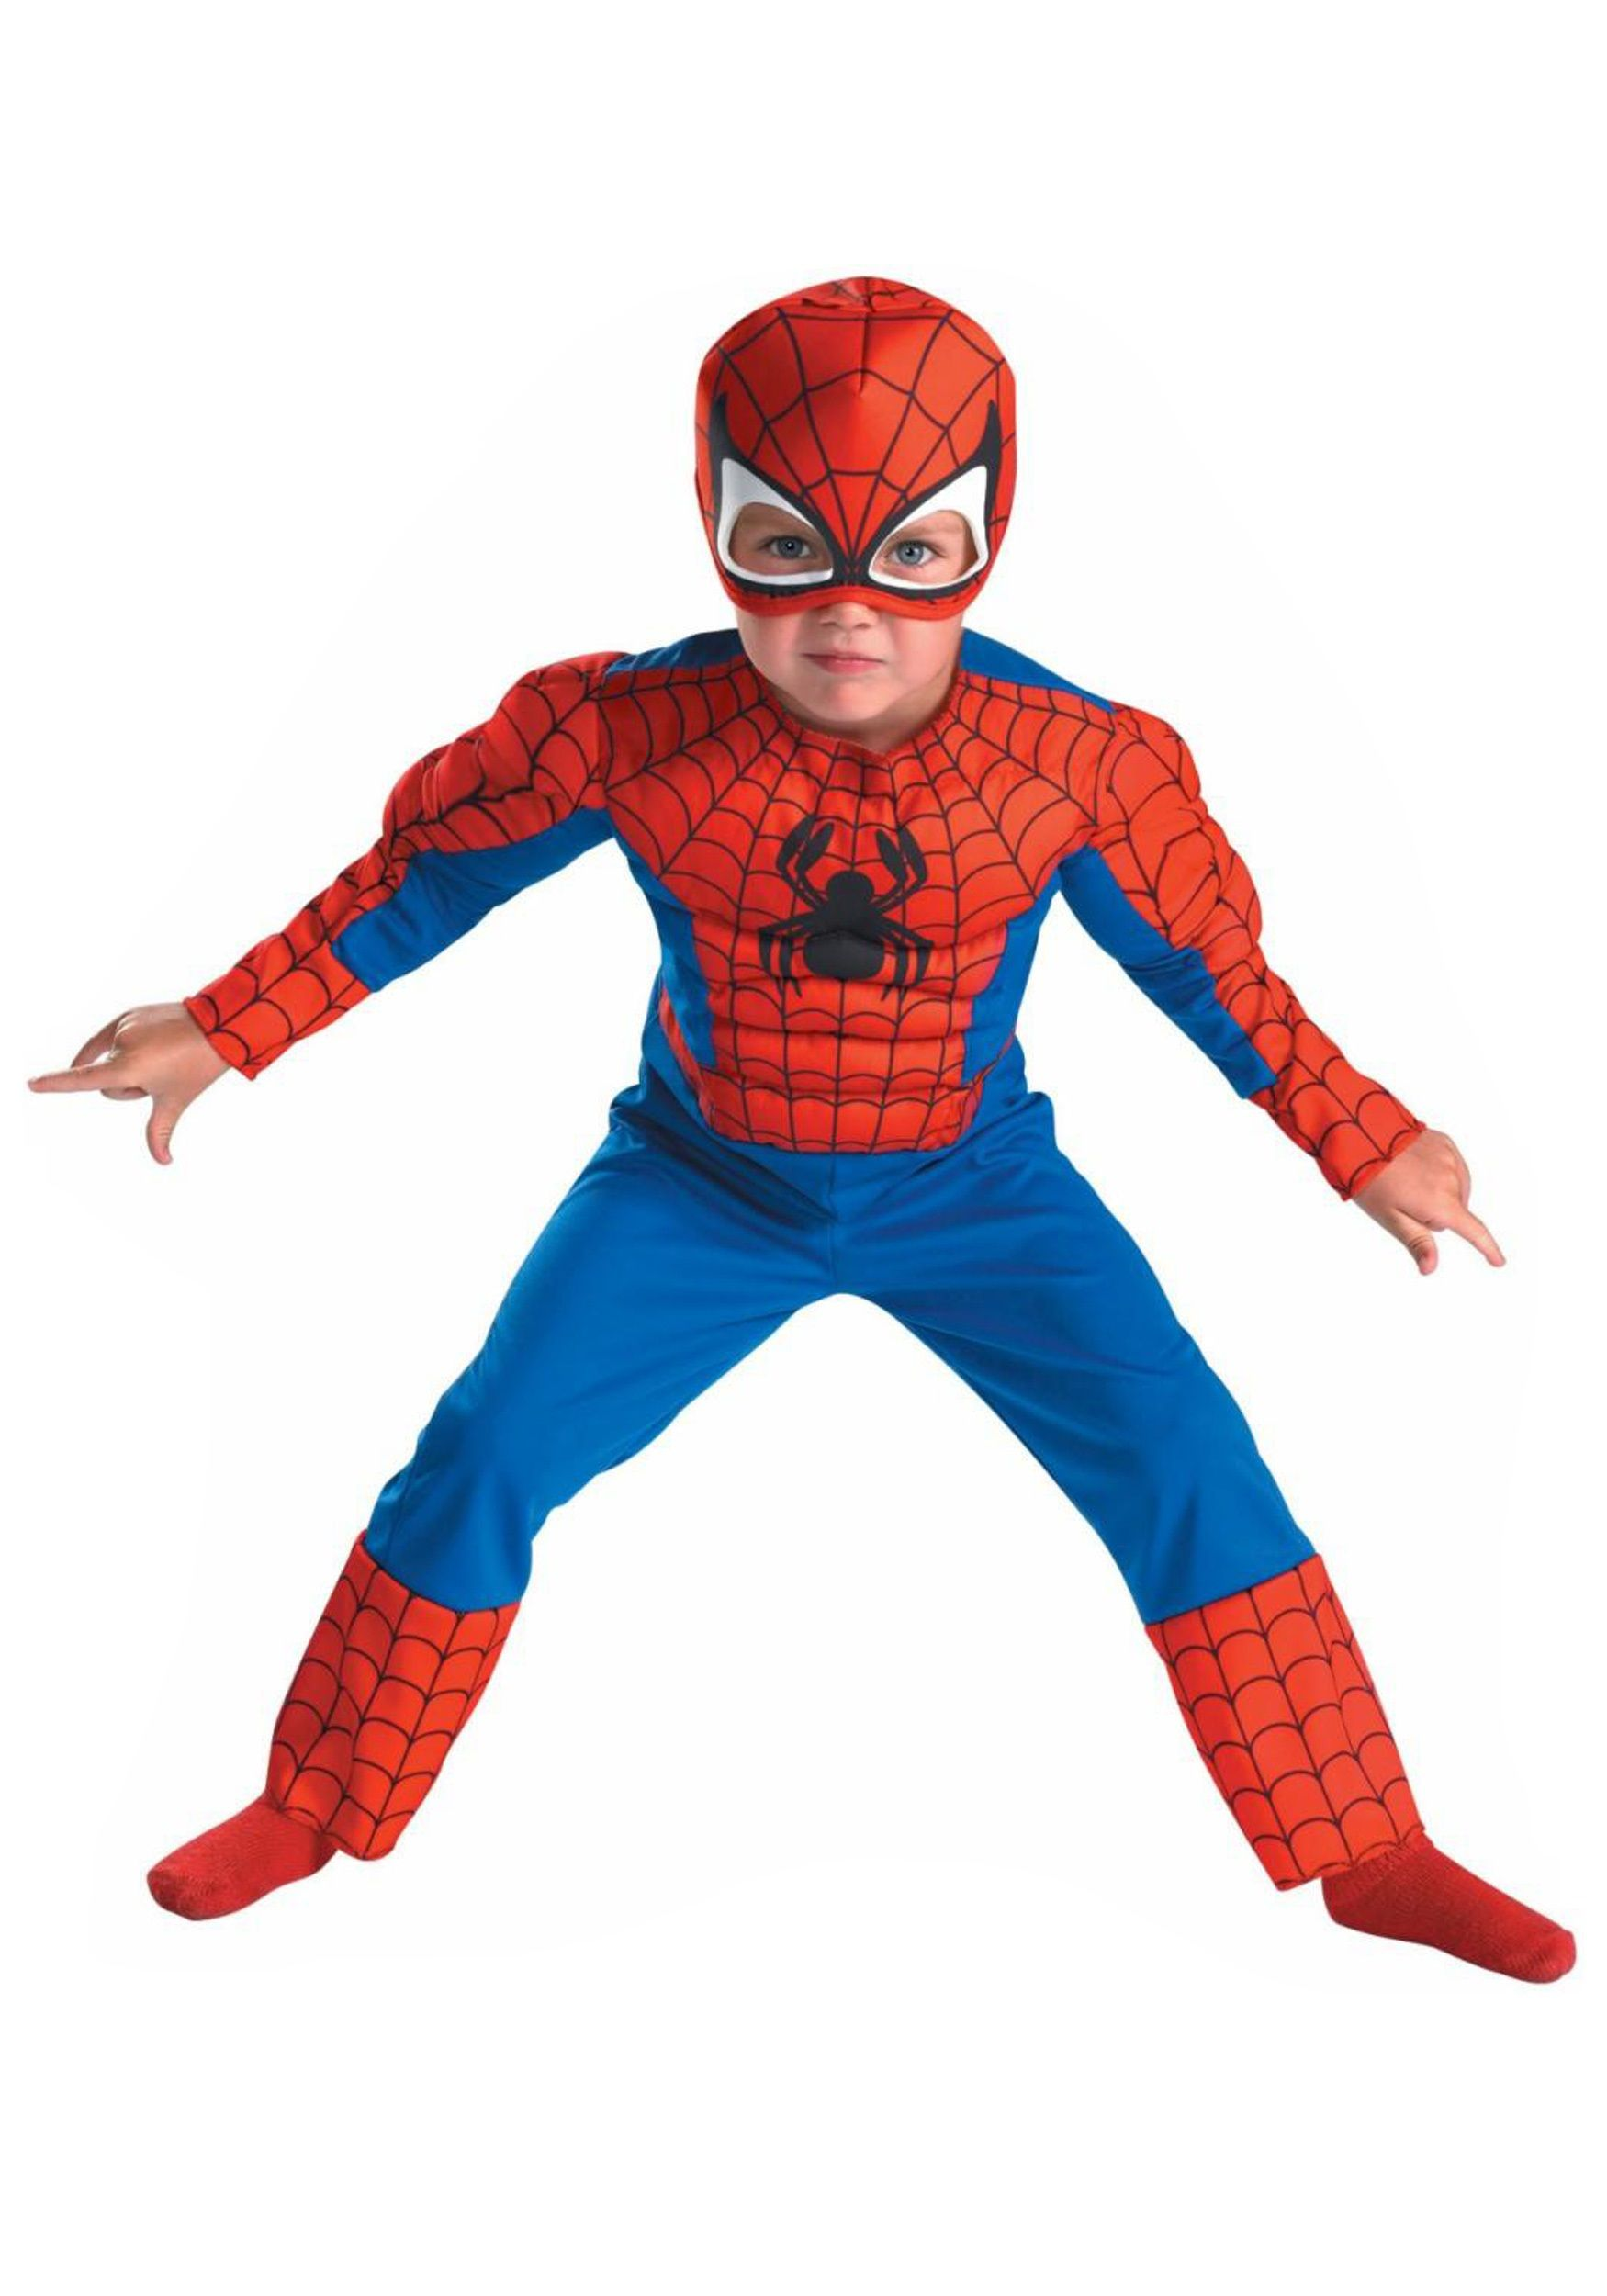 Deluxe Toddler Spiderman Costume  sc 1 st  Pinterest & Deluxe Toddler Spiderman Costume | Halloween | Pinterest | Toddler ...